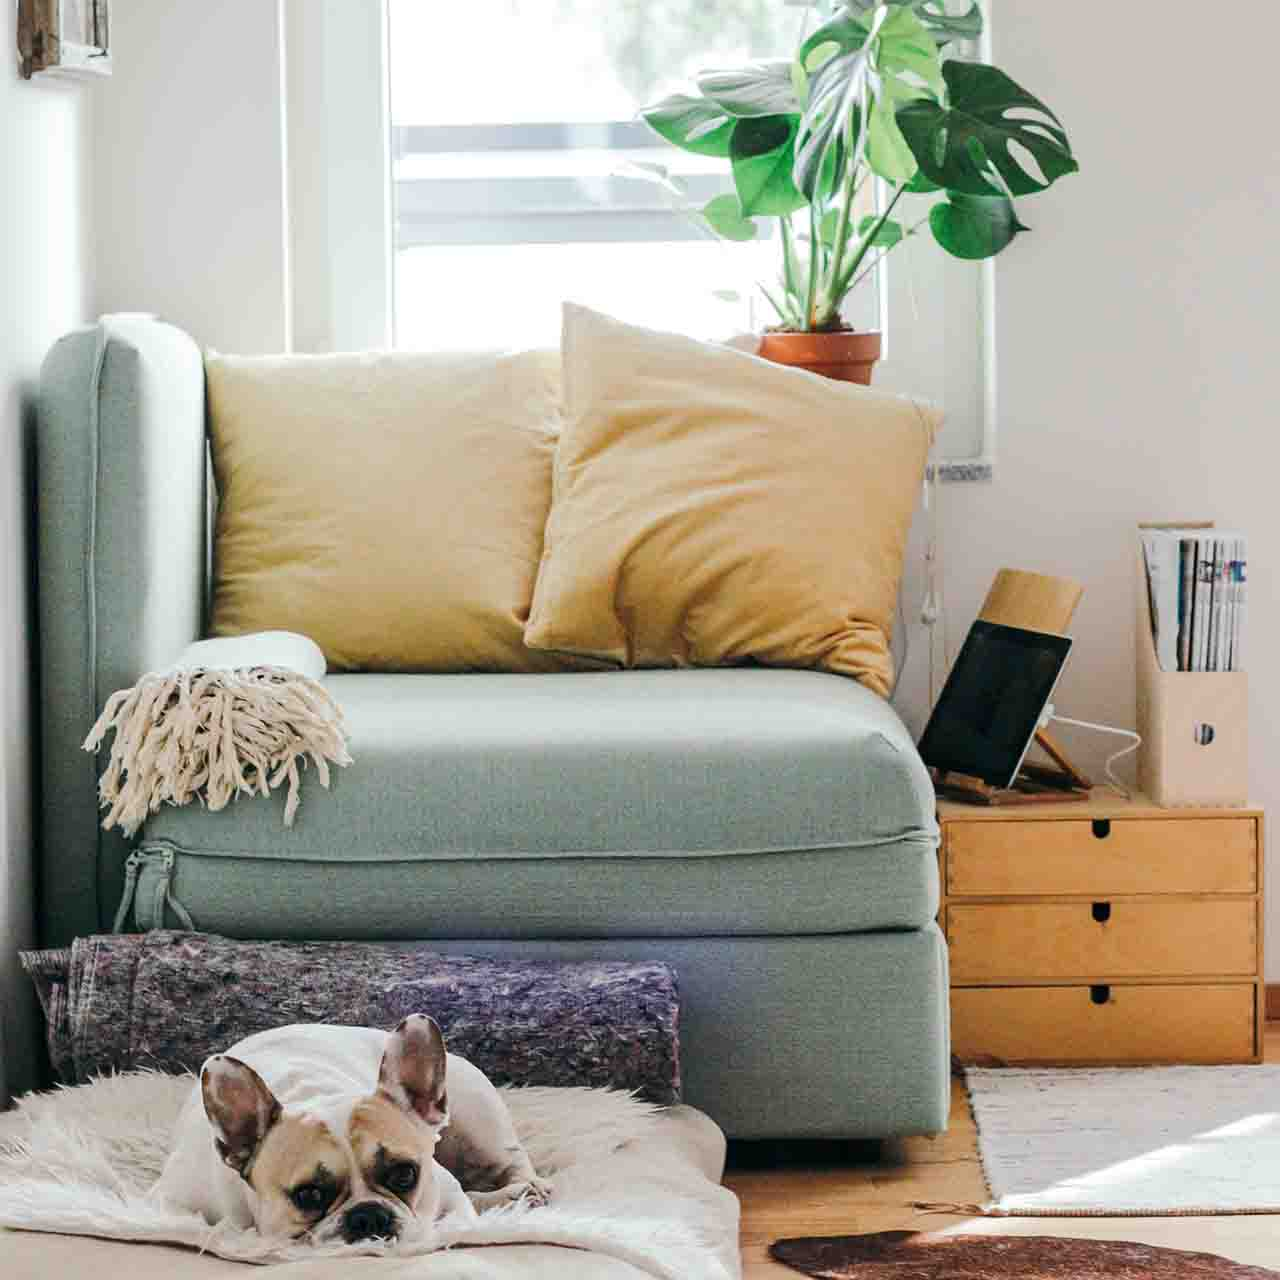 Dog sitting on a mat inside a cosy home